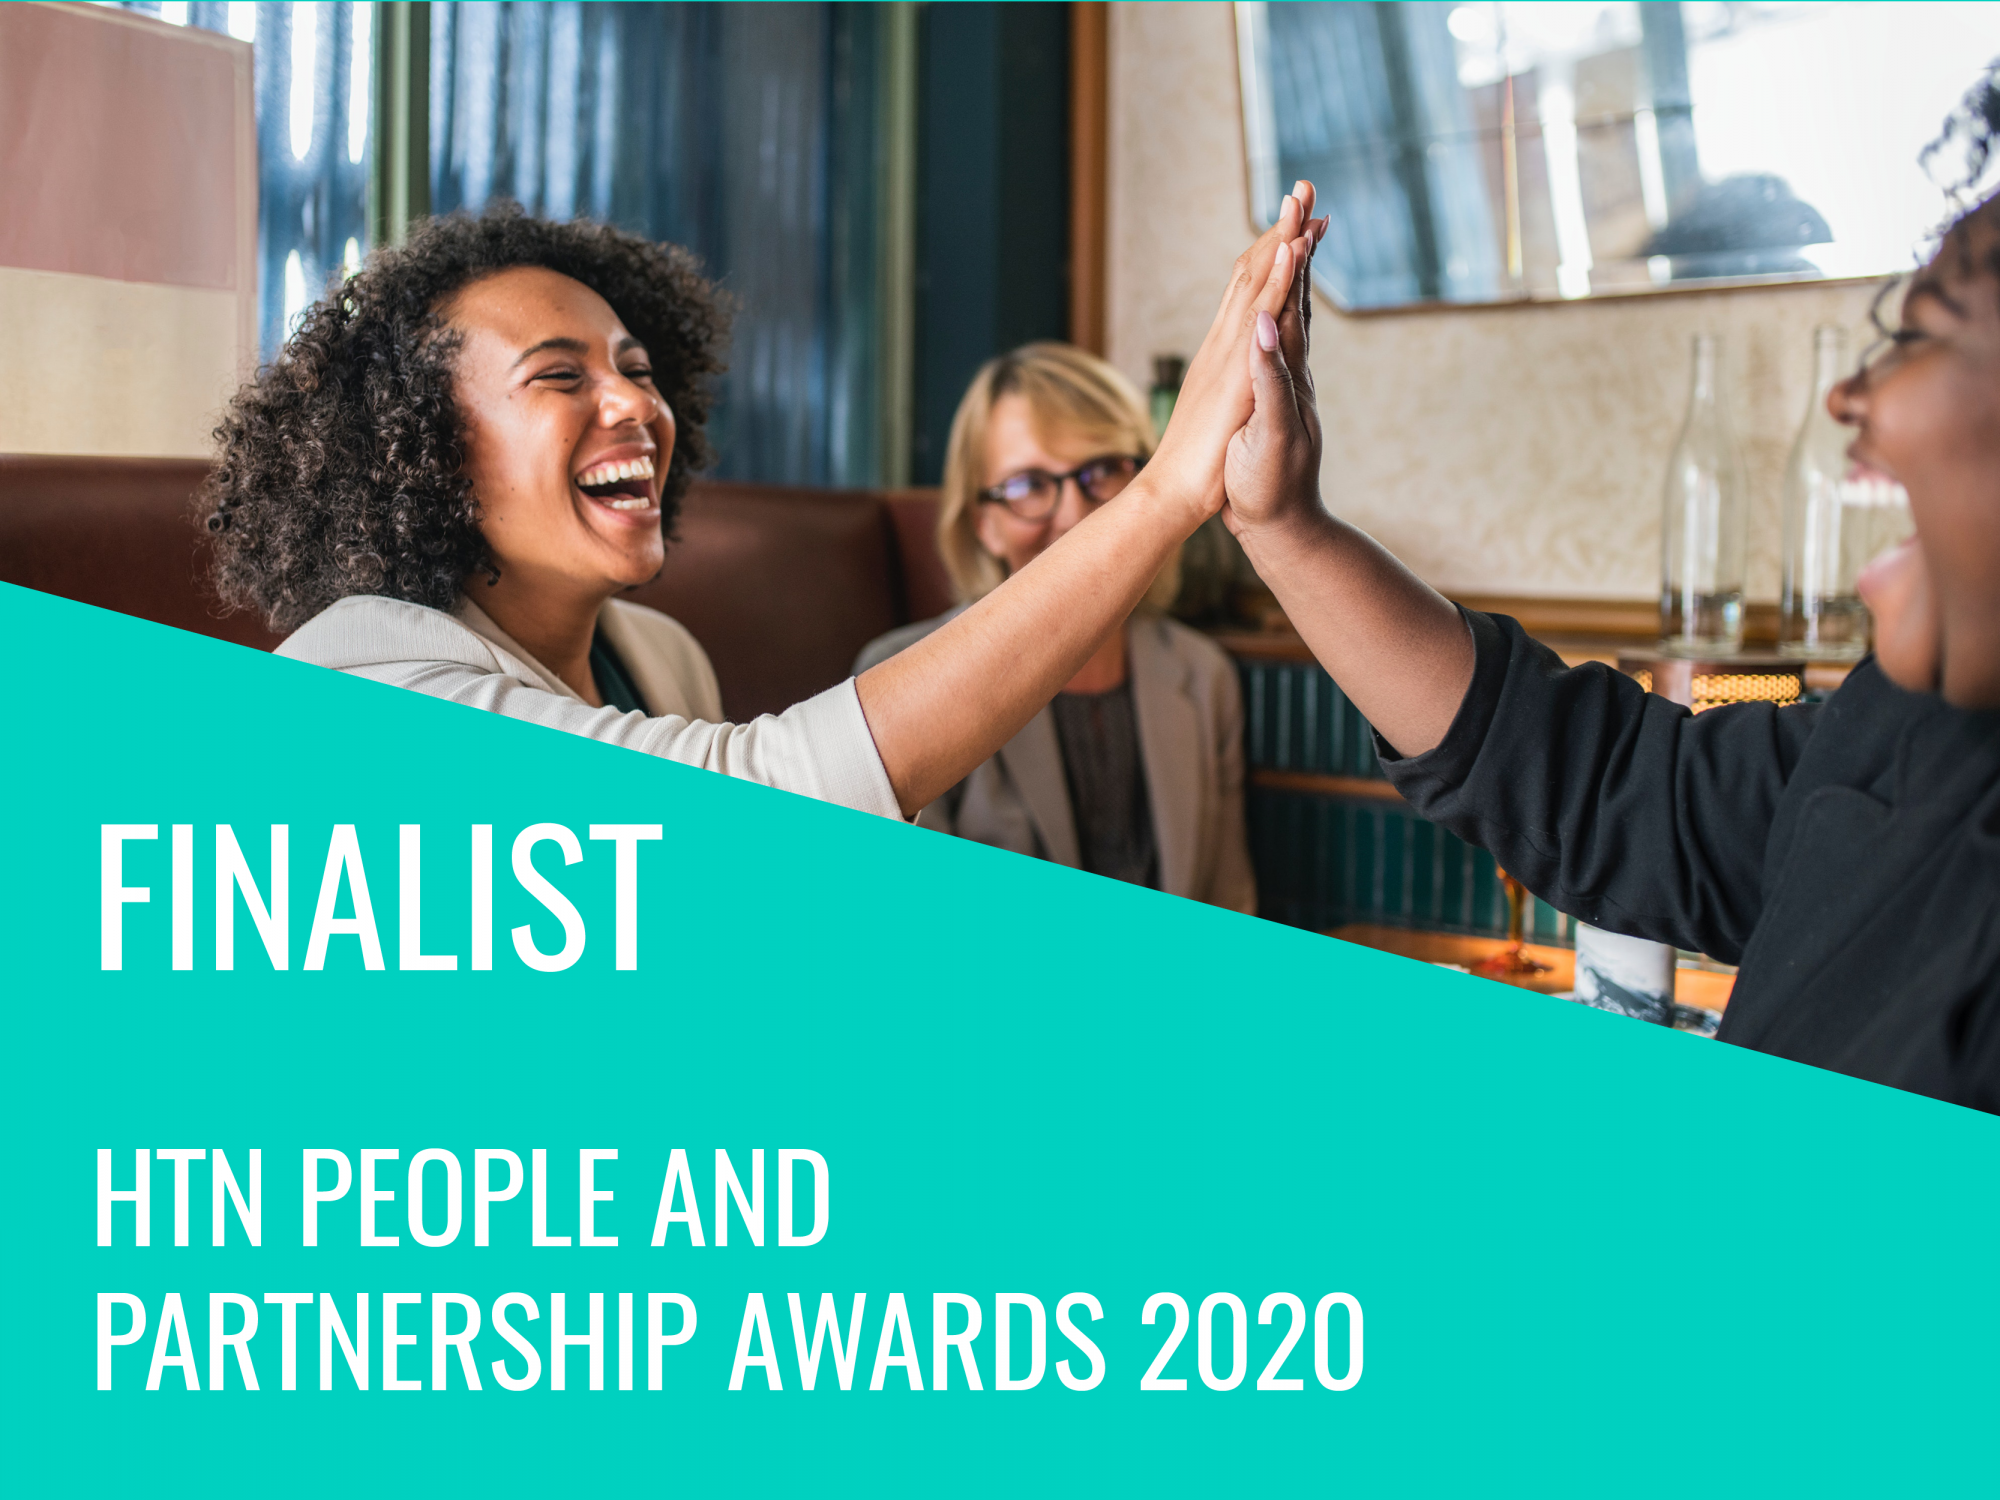 Finalist HTN People and Partnership Awards